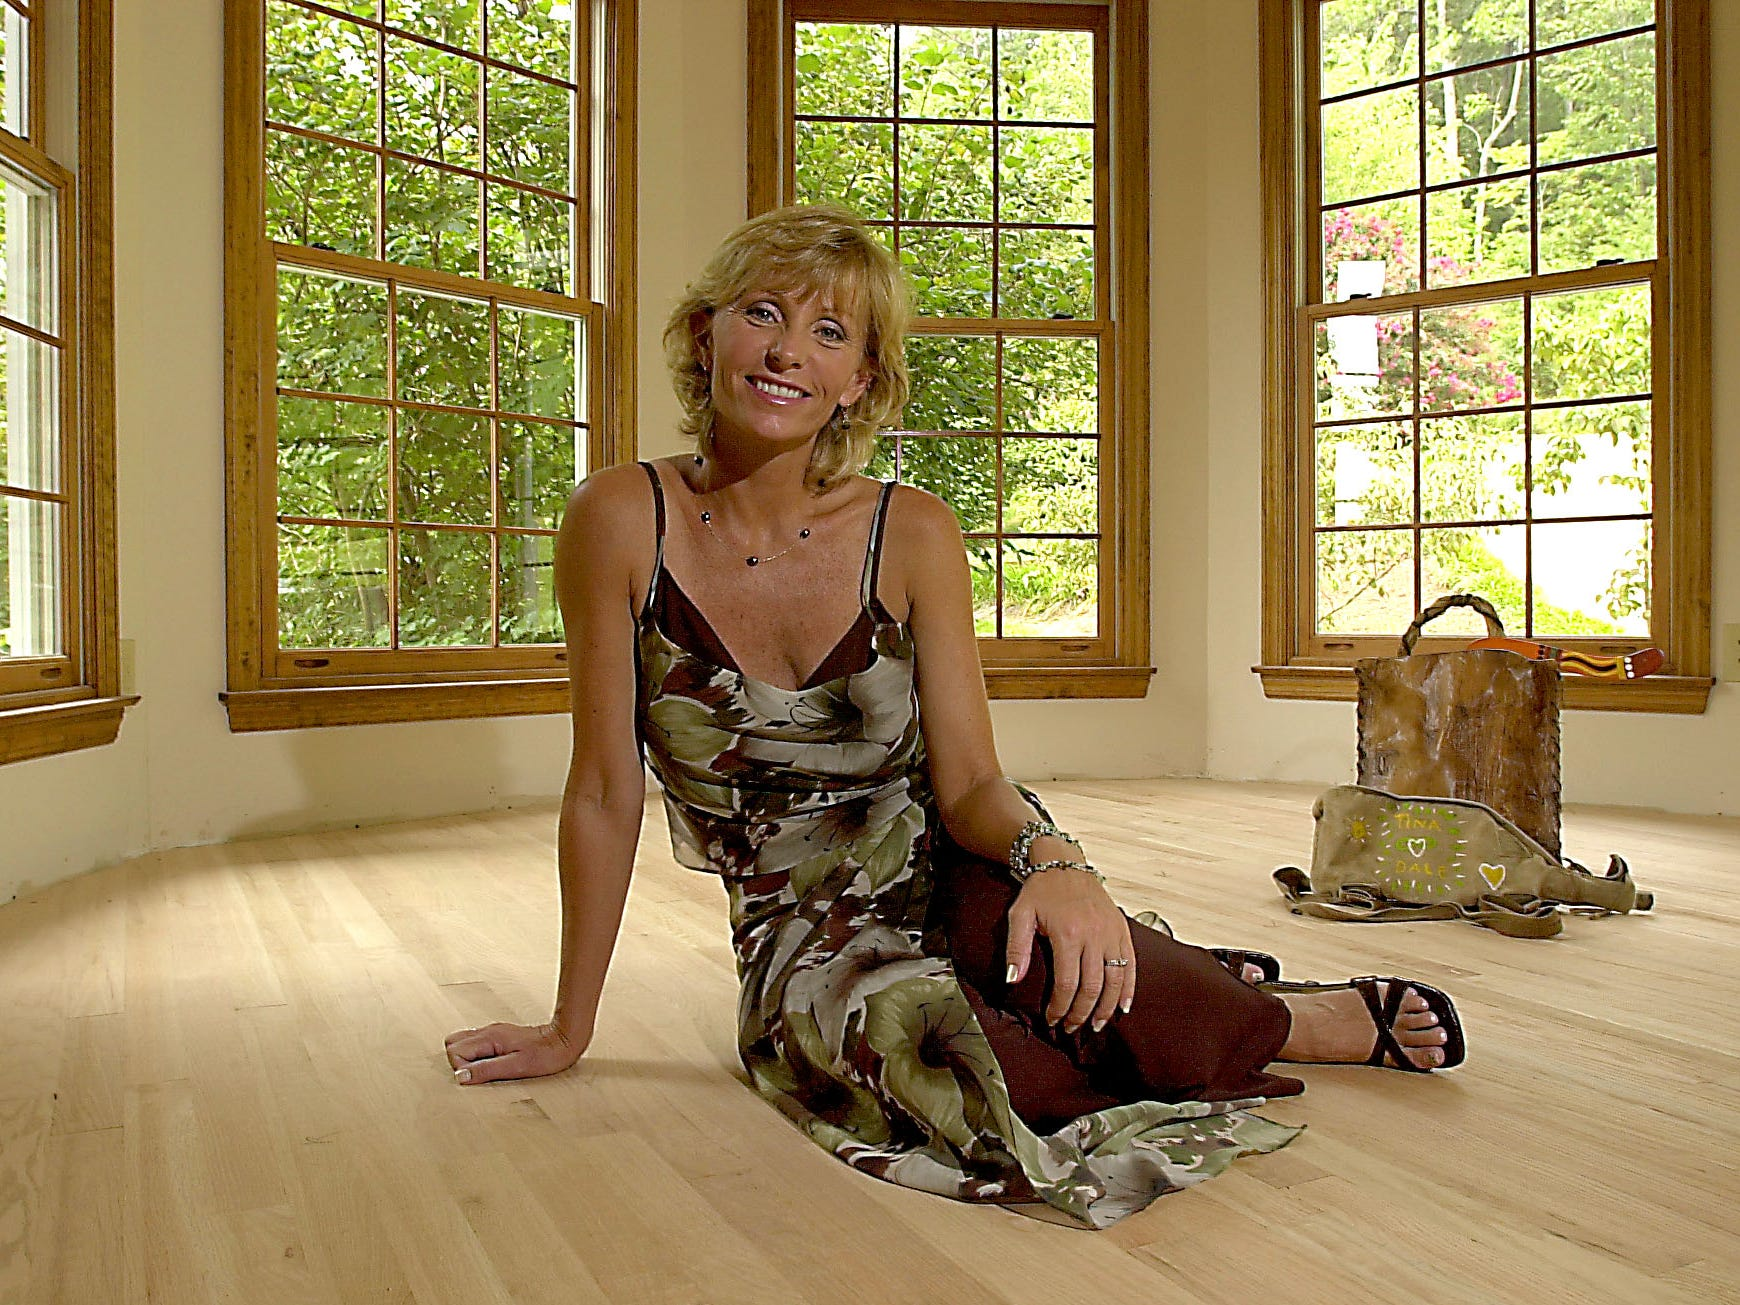 Tina Wesson, a cast member of the Survivor reality TV show, is pictured during a fashion shoot on Aug. 16, 2001, at her Fountain City home.